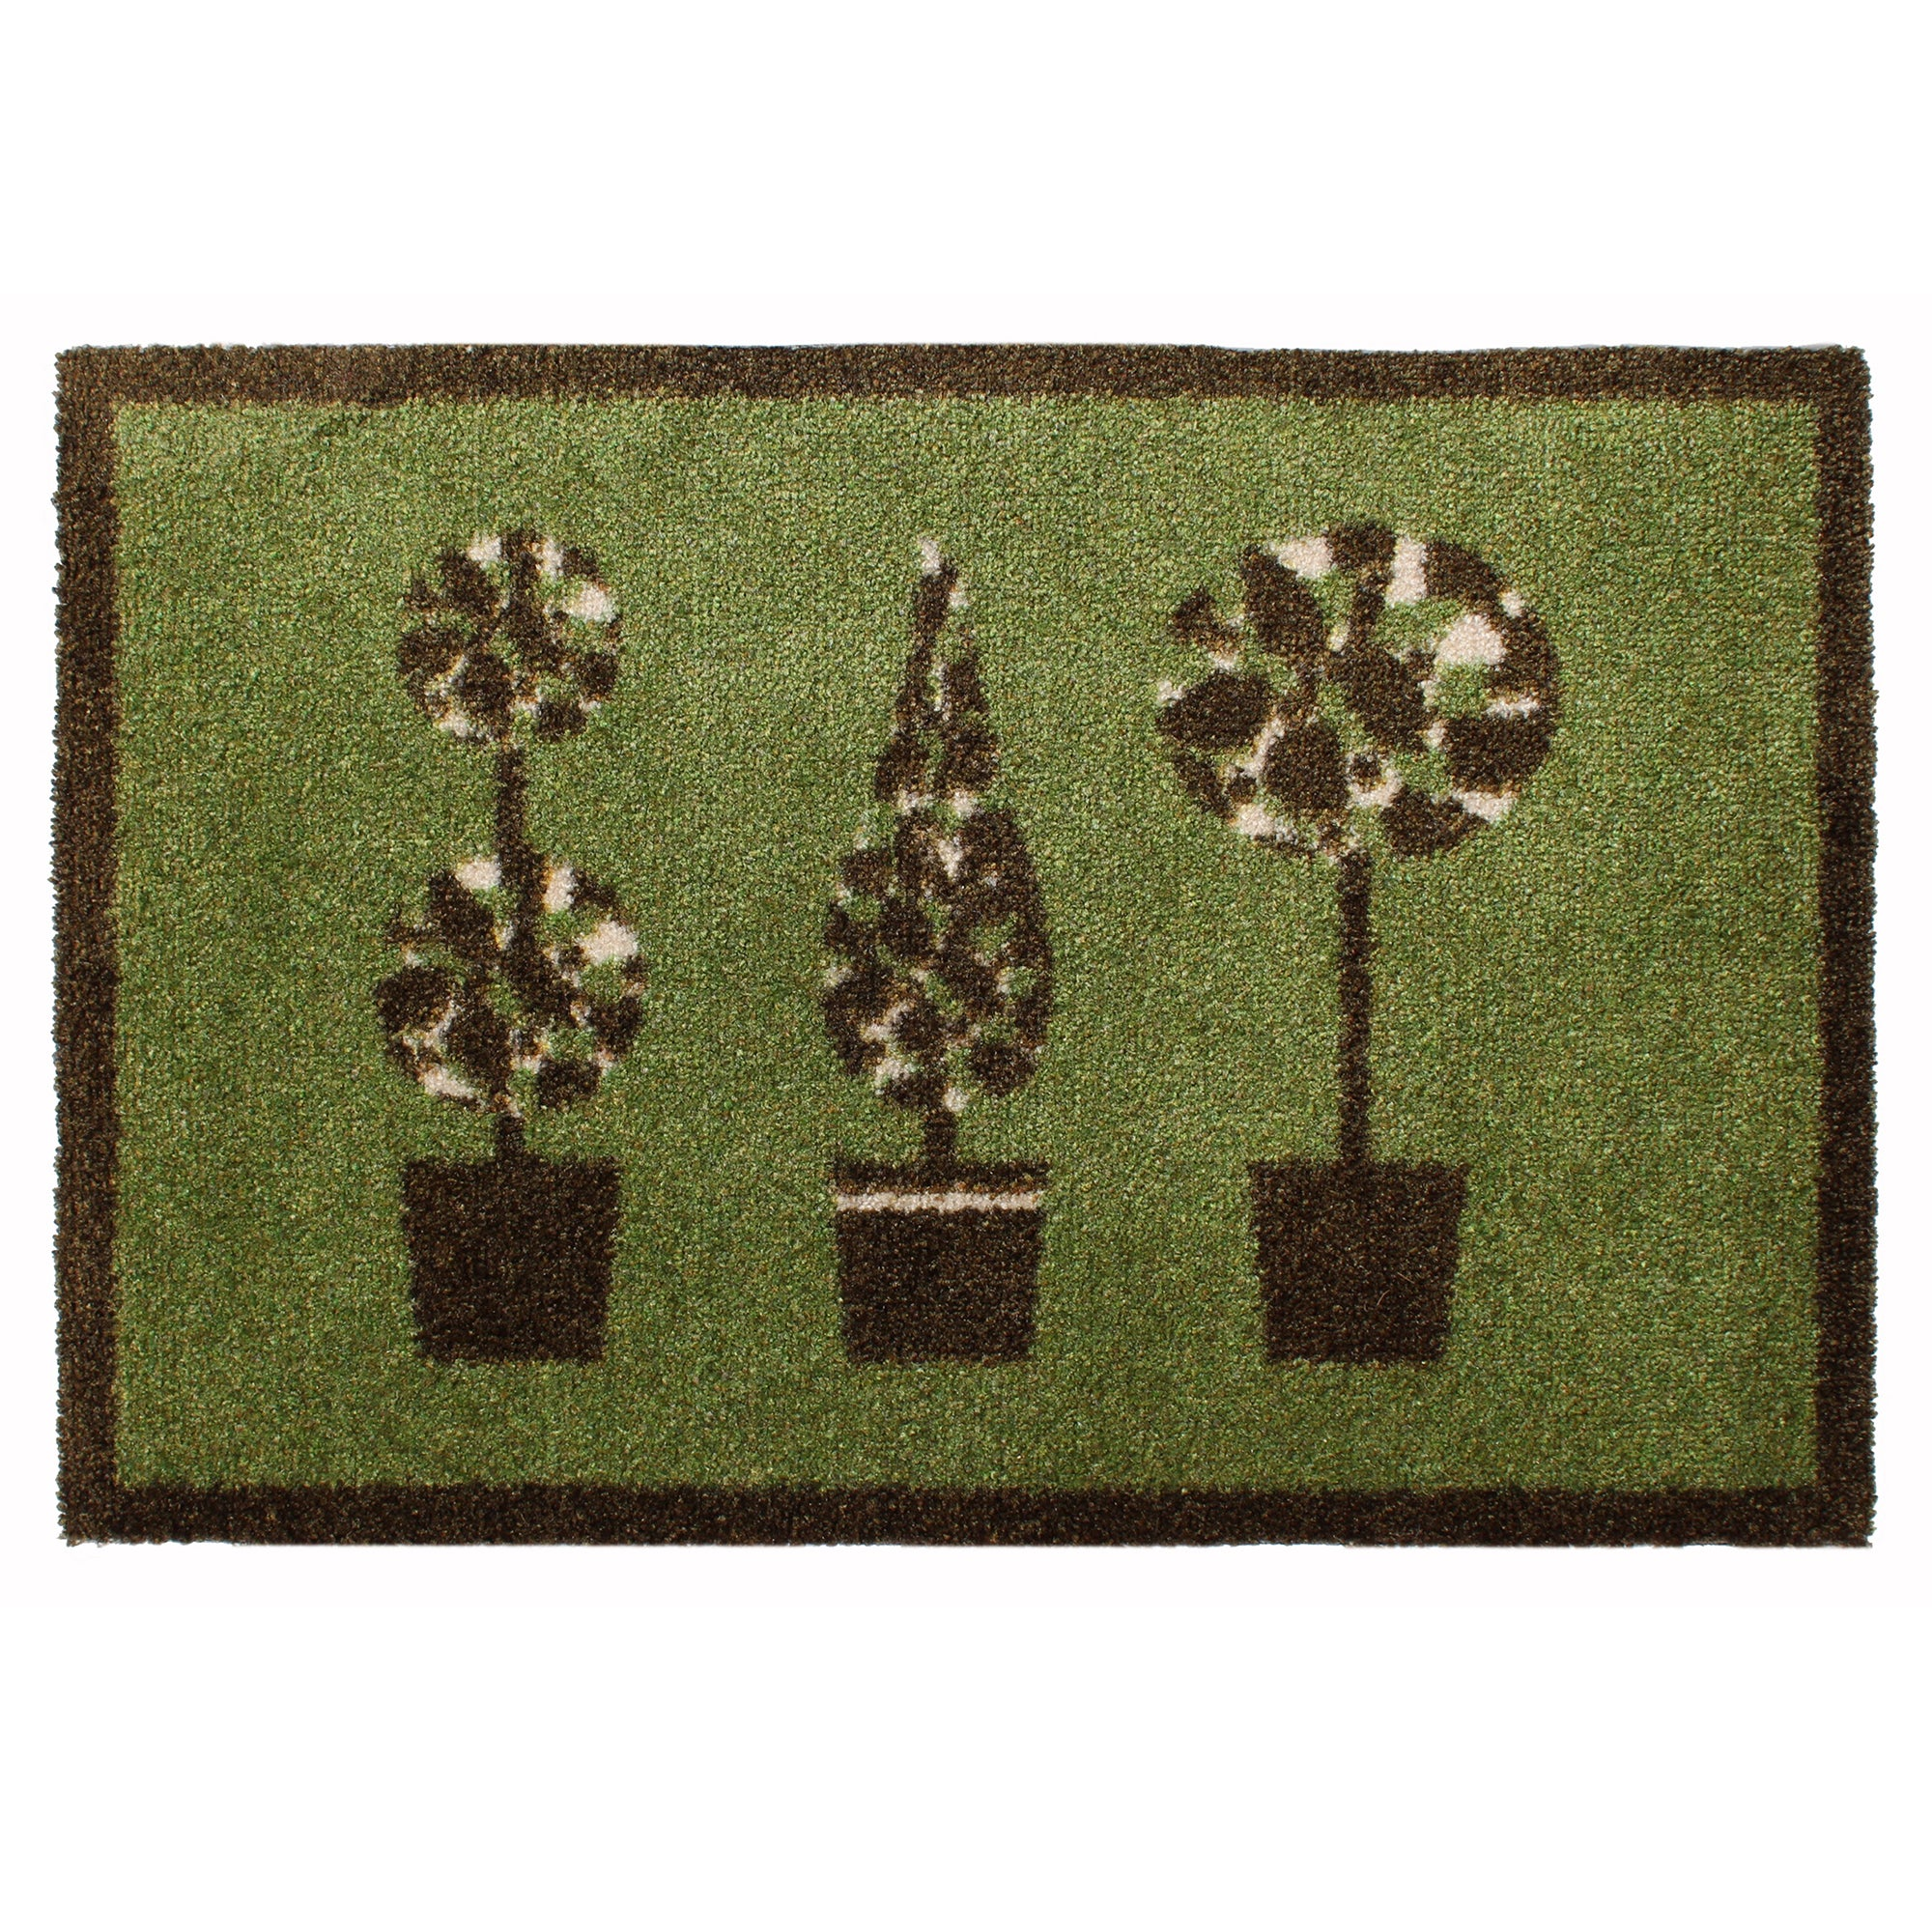 Eco Printed Trees Doormat